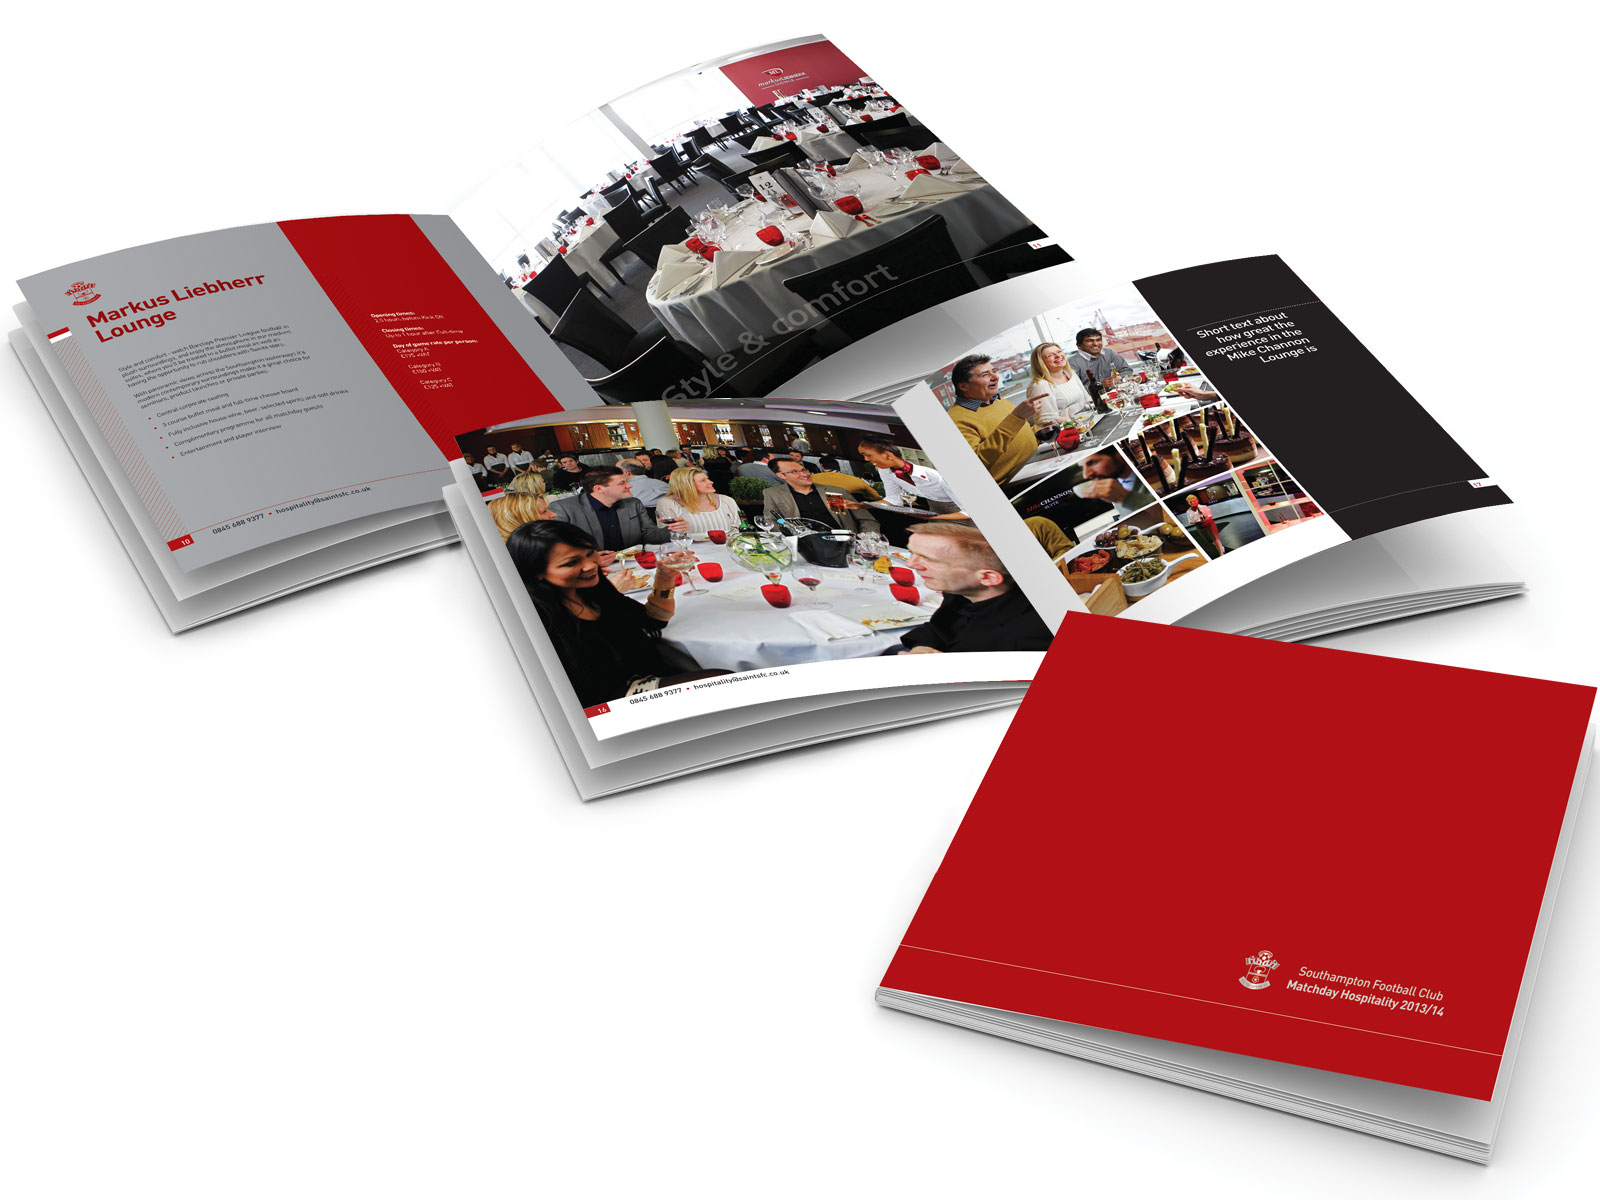 Saints-SFC-Corporate-Hospitality-Brochure-Design